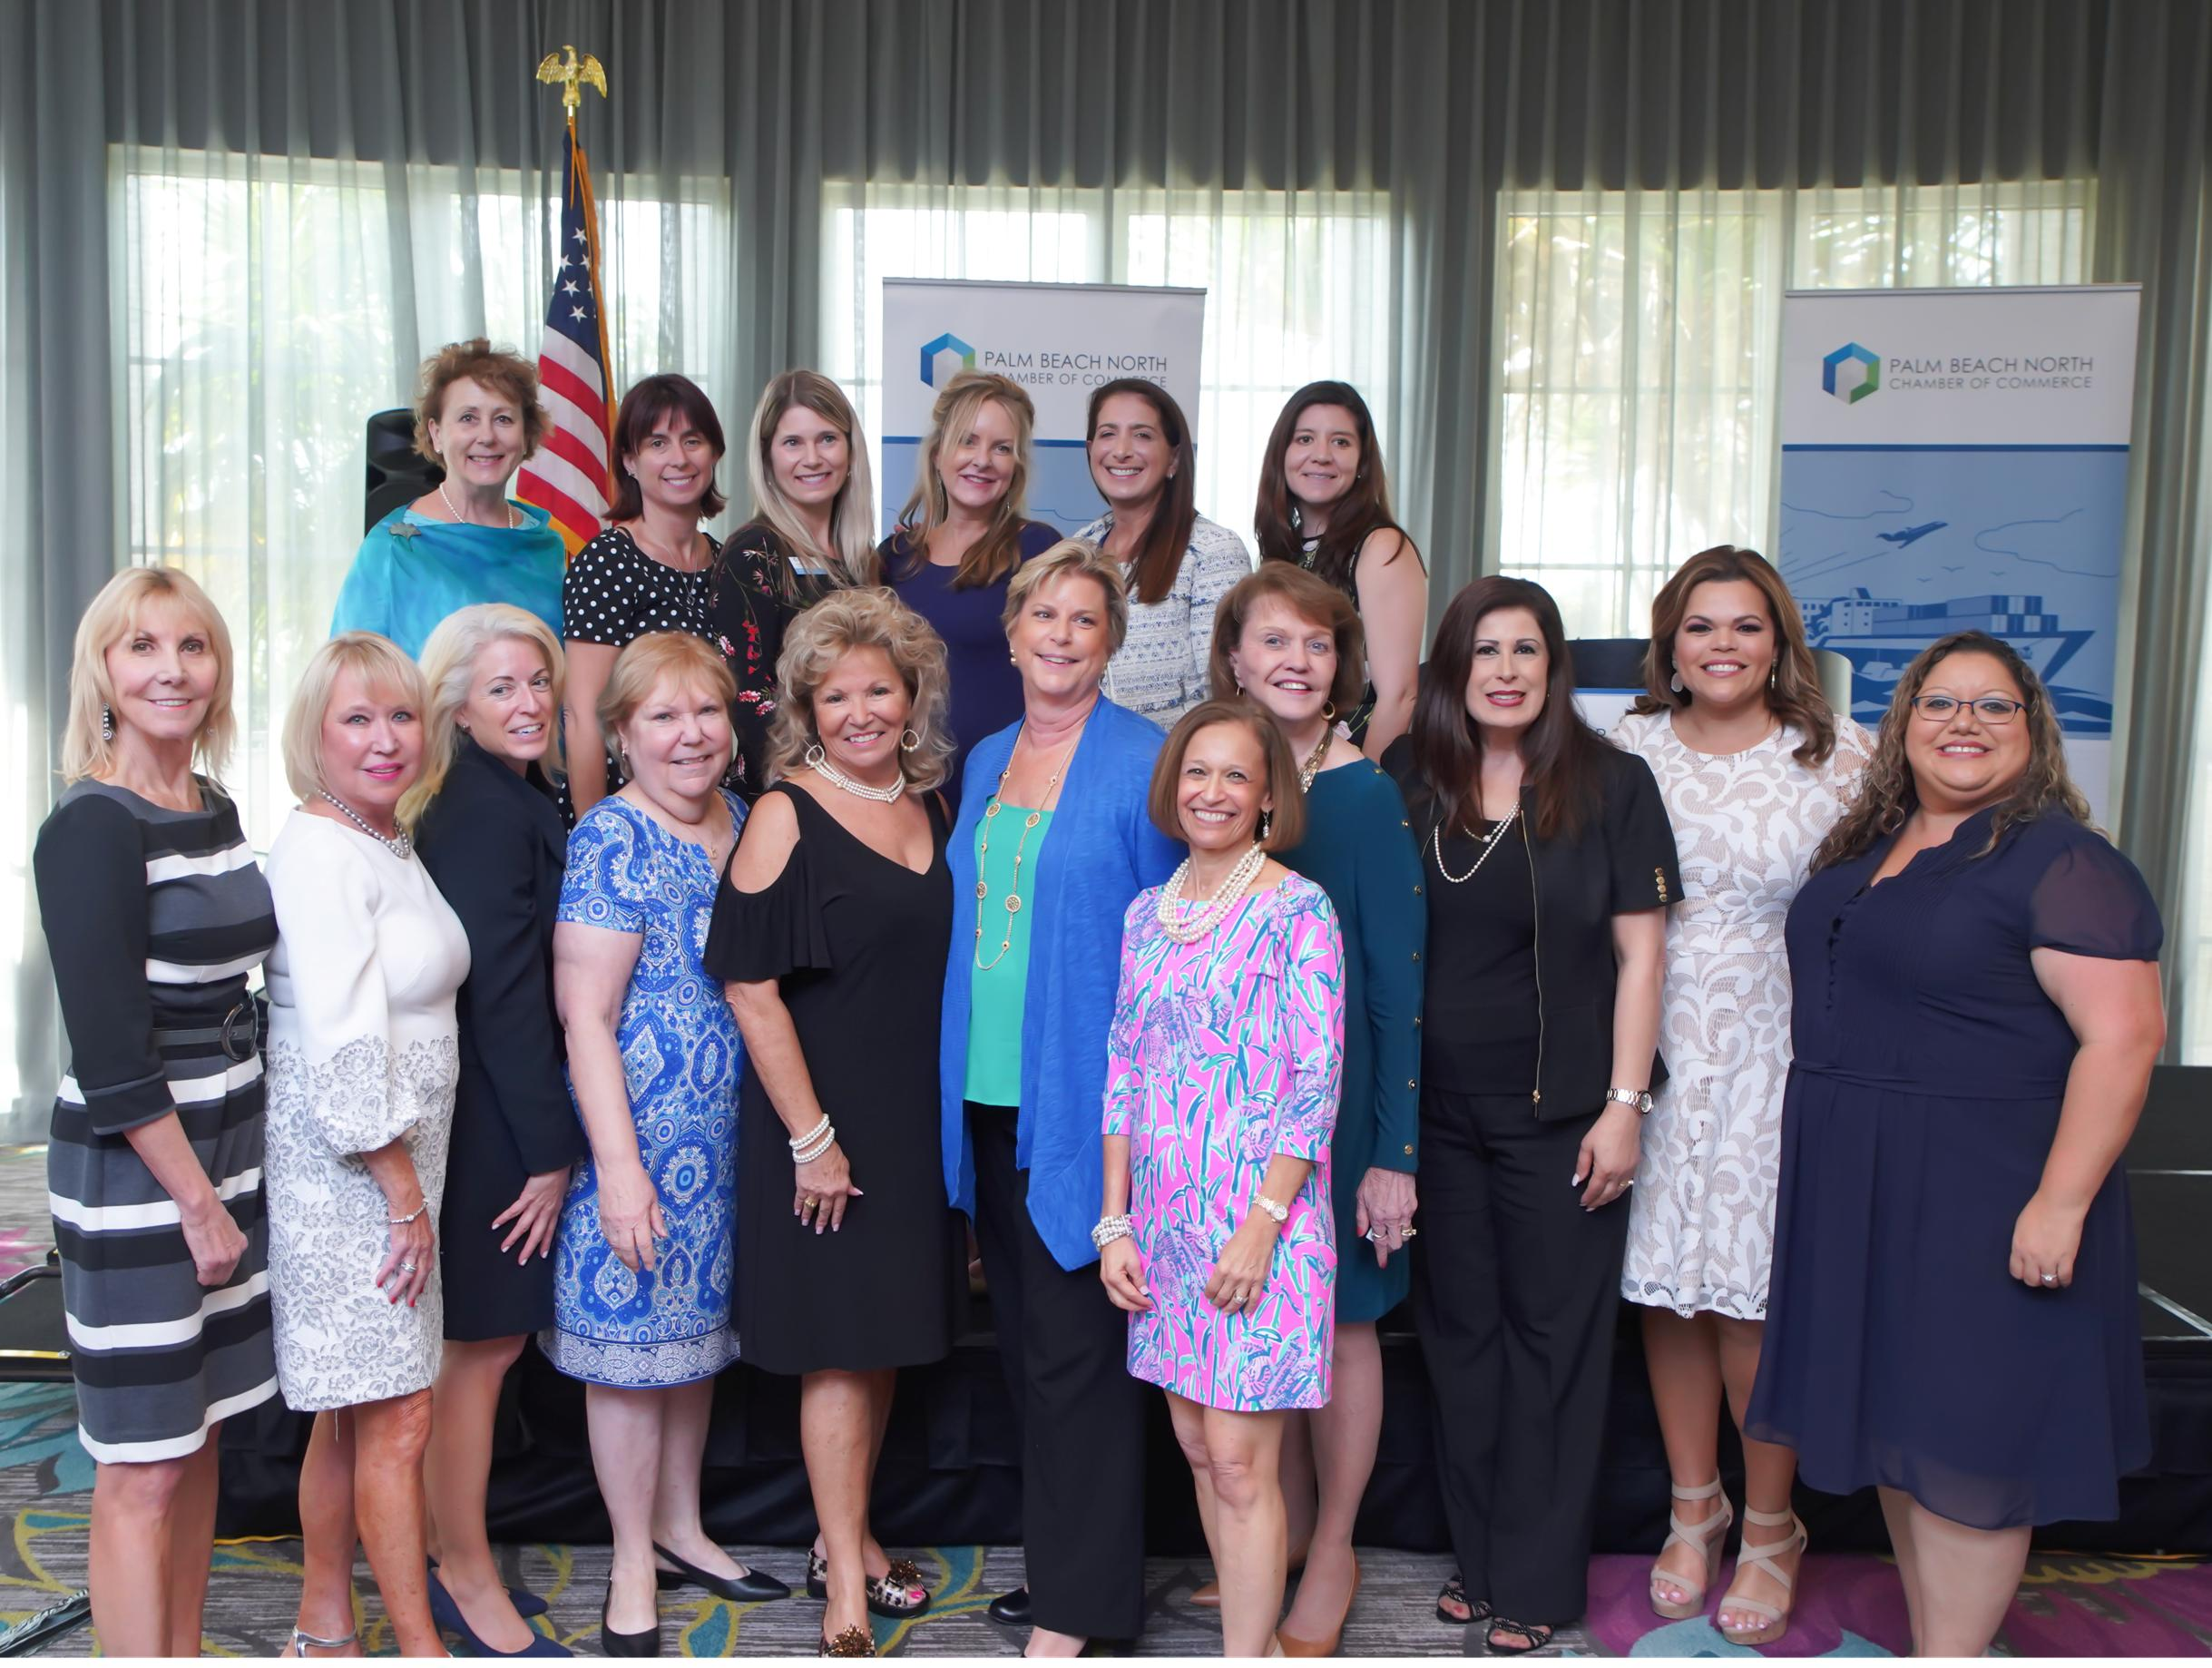 Women In Business Council Photo 2018-2019 - use this